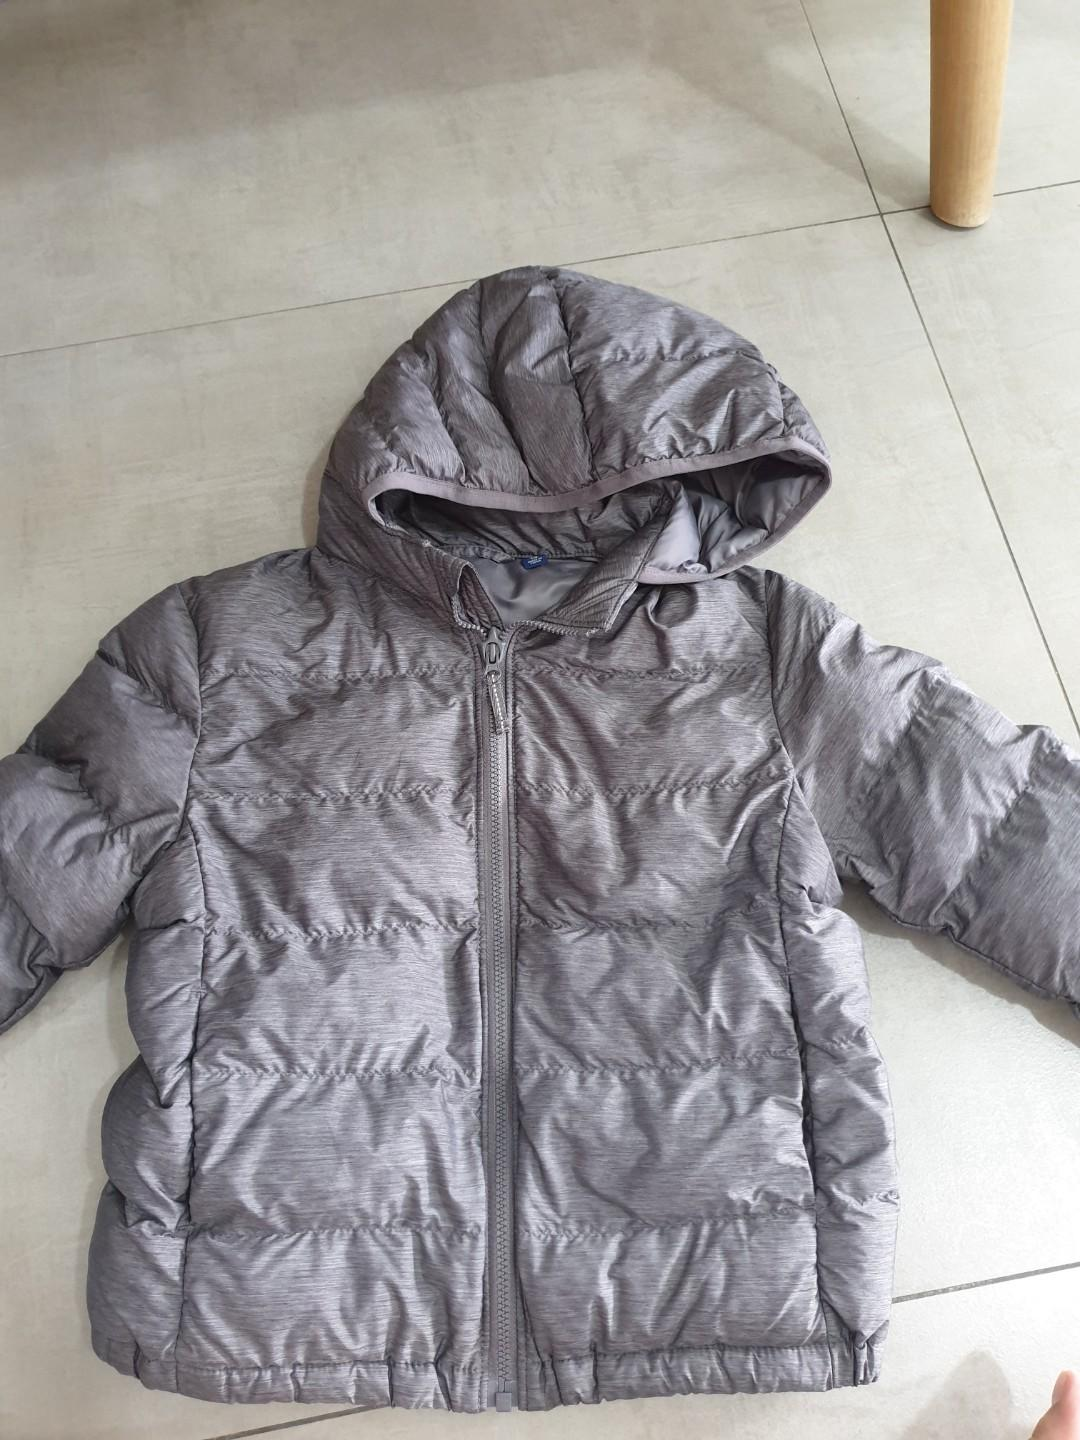 Uniqlo Winter Jacket tagged size 110